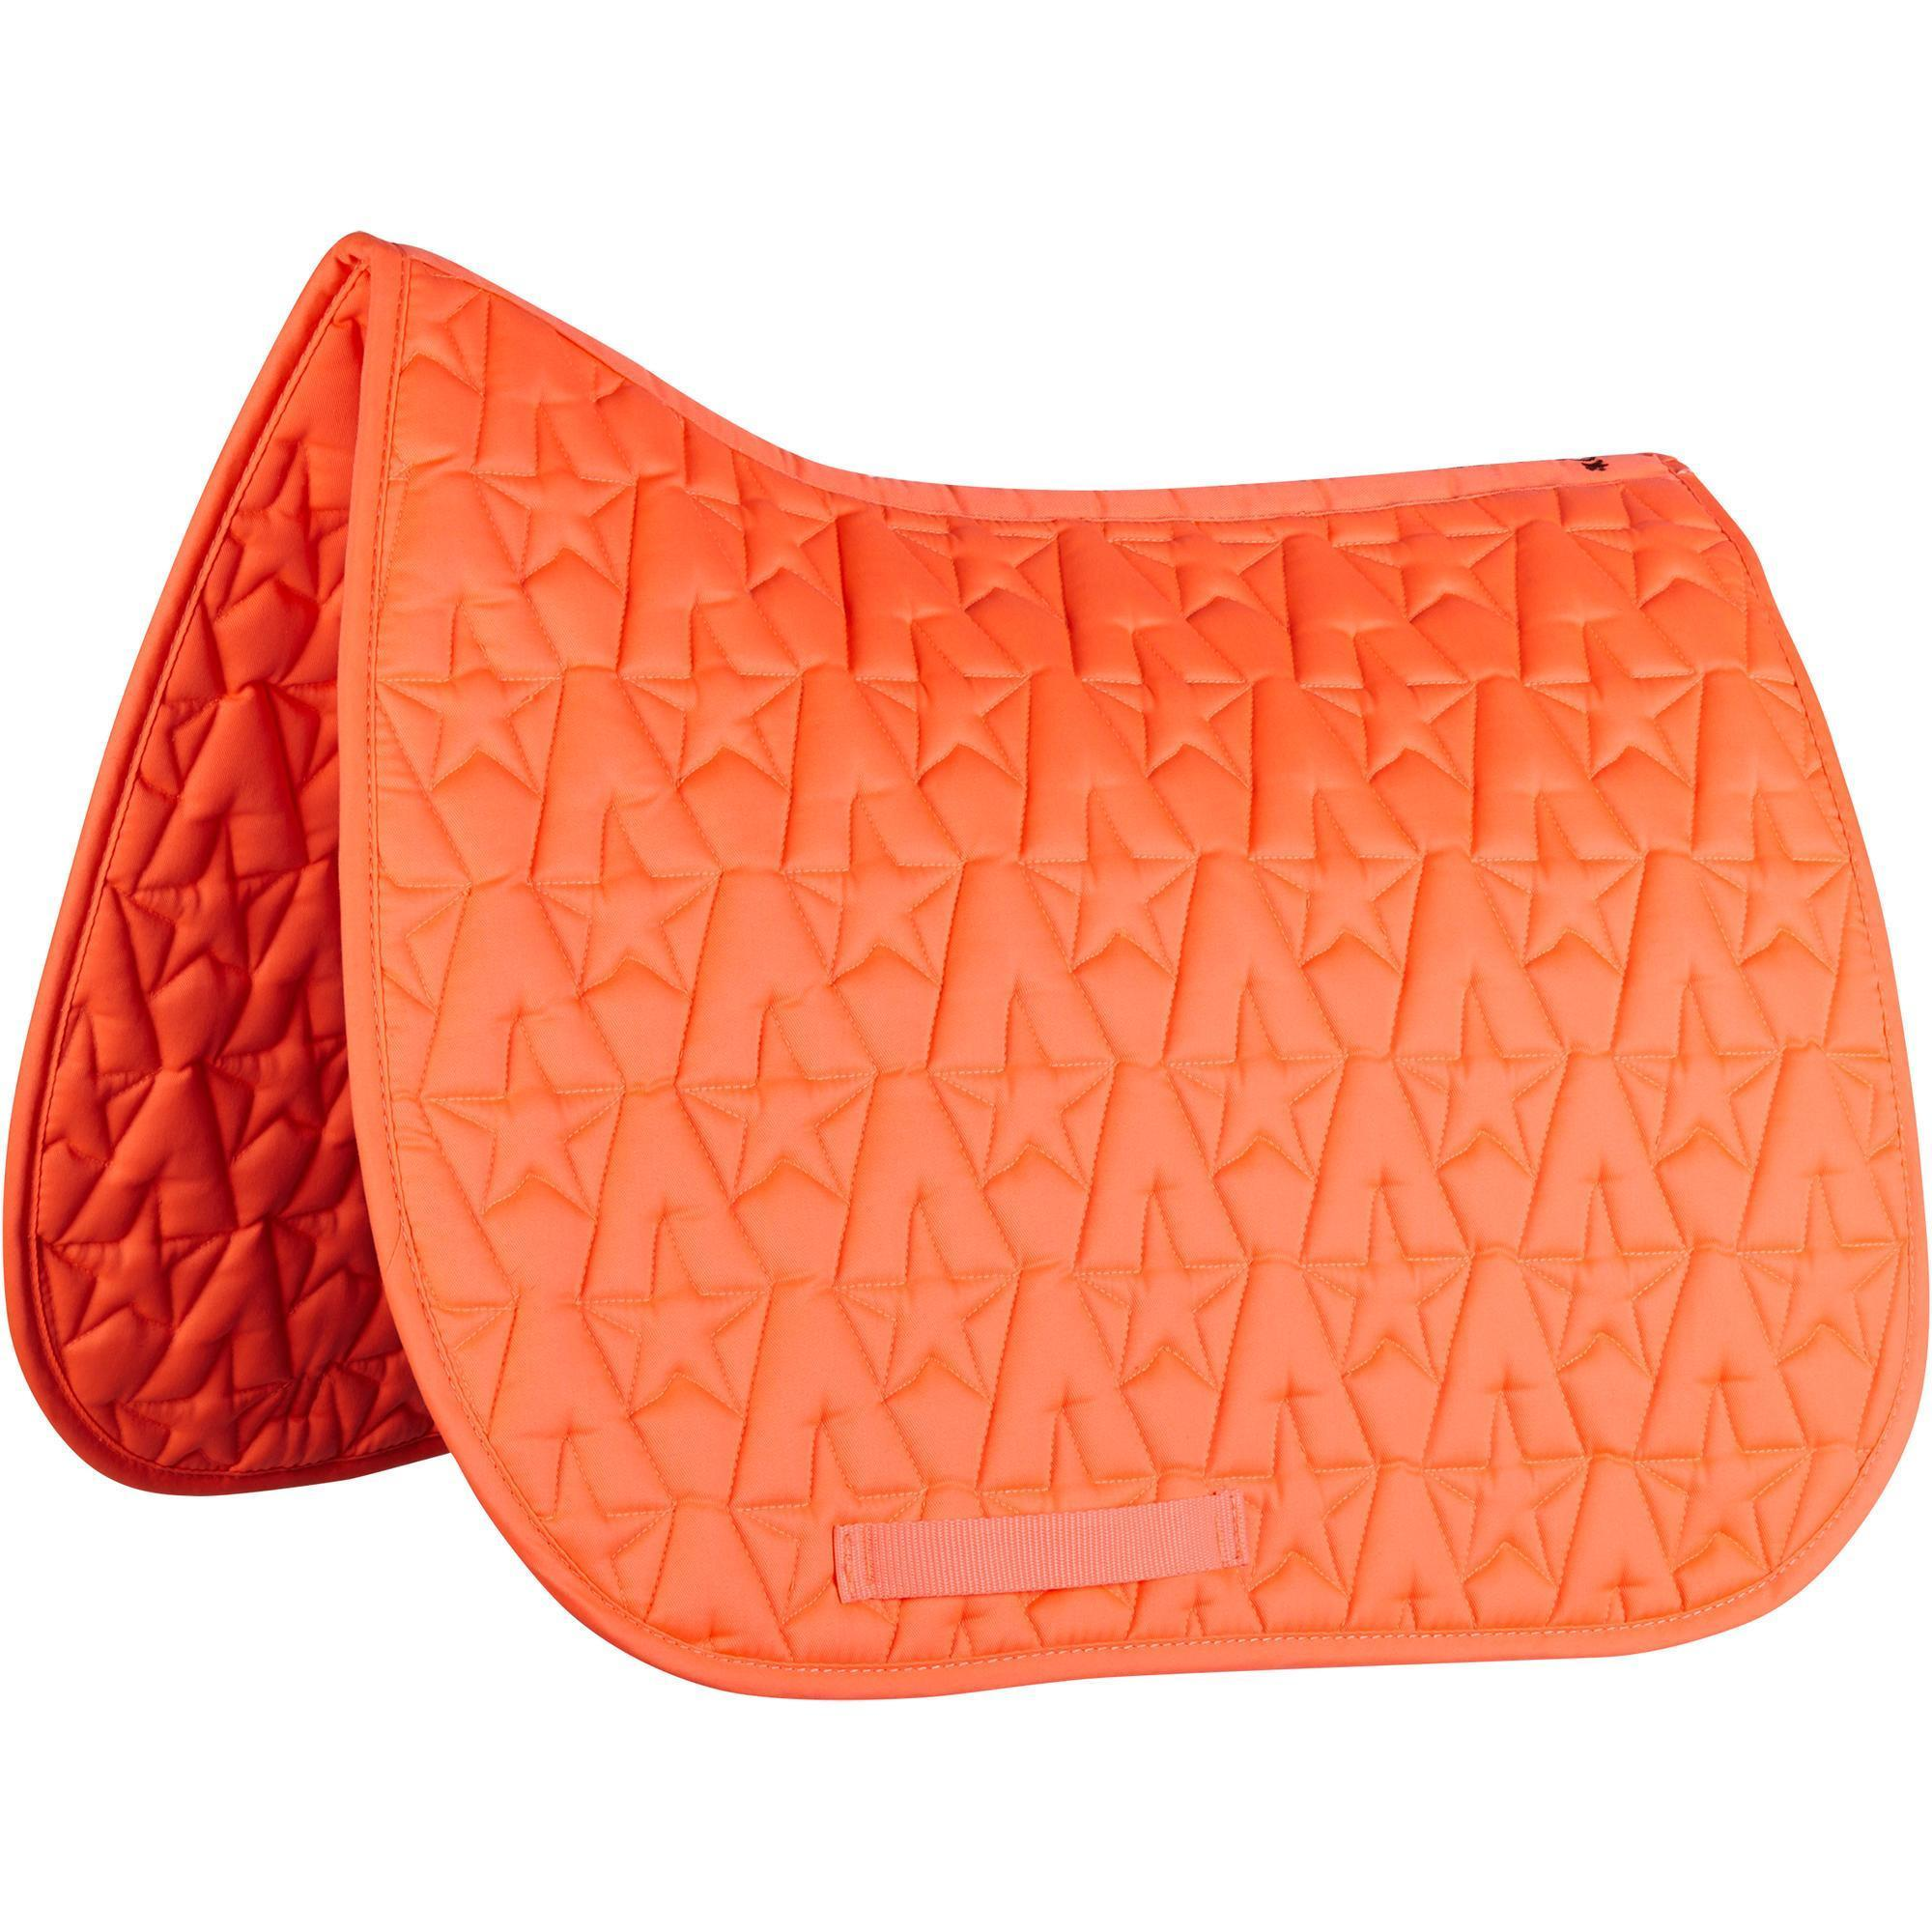 Tapis de selle quitation poney et cheval 100 star orange fluo fouganza - Decathlon equitation tapis ...